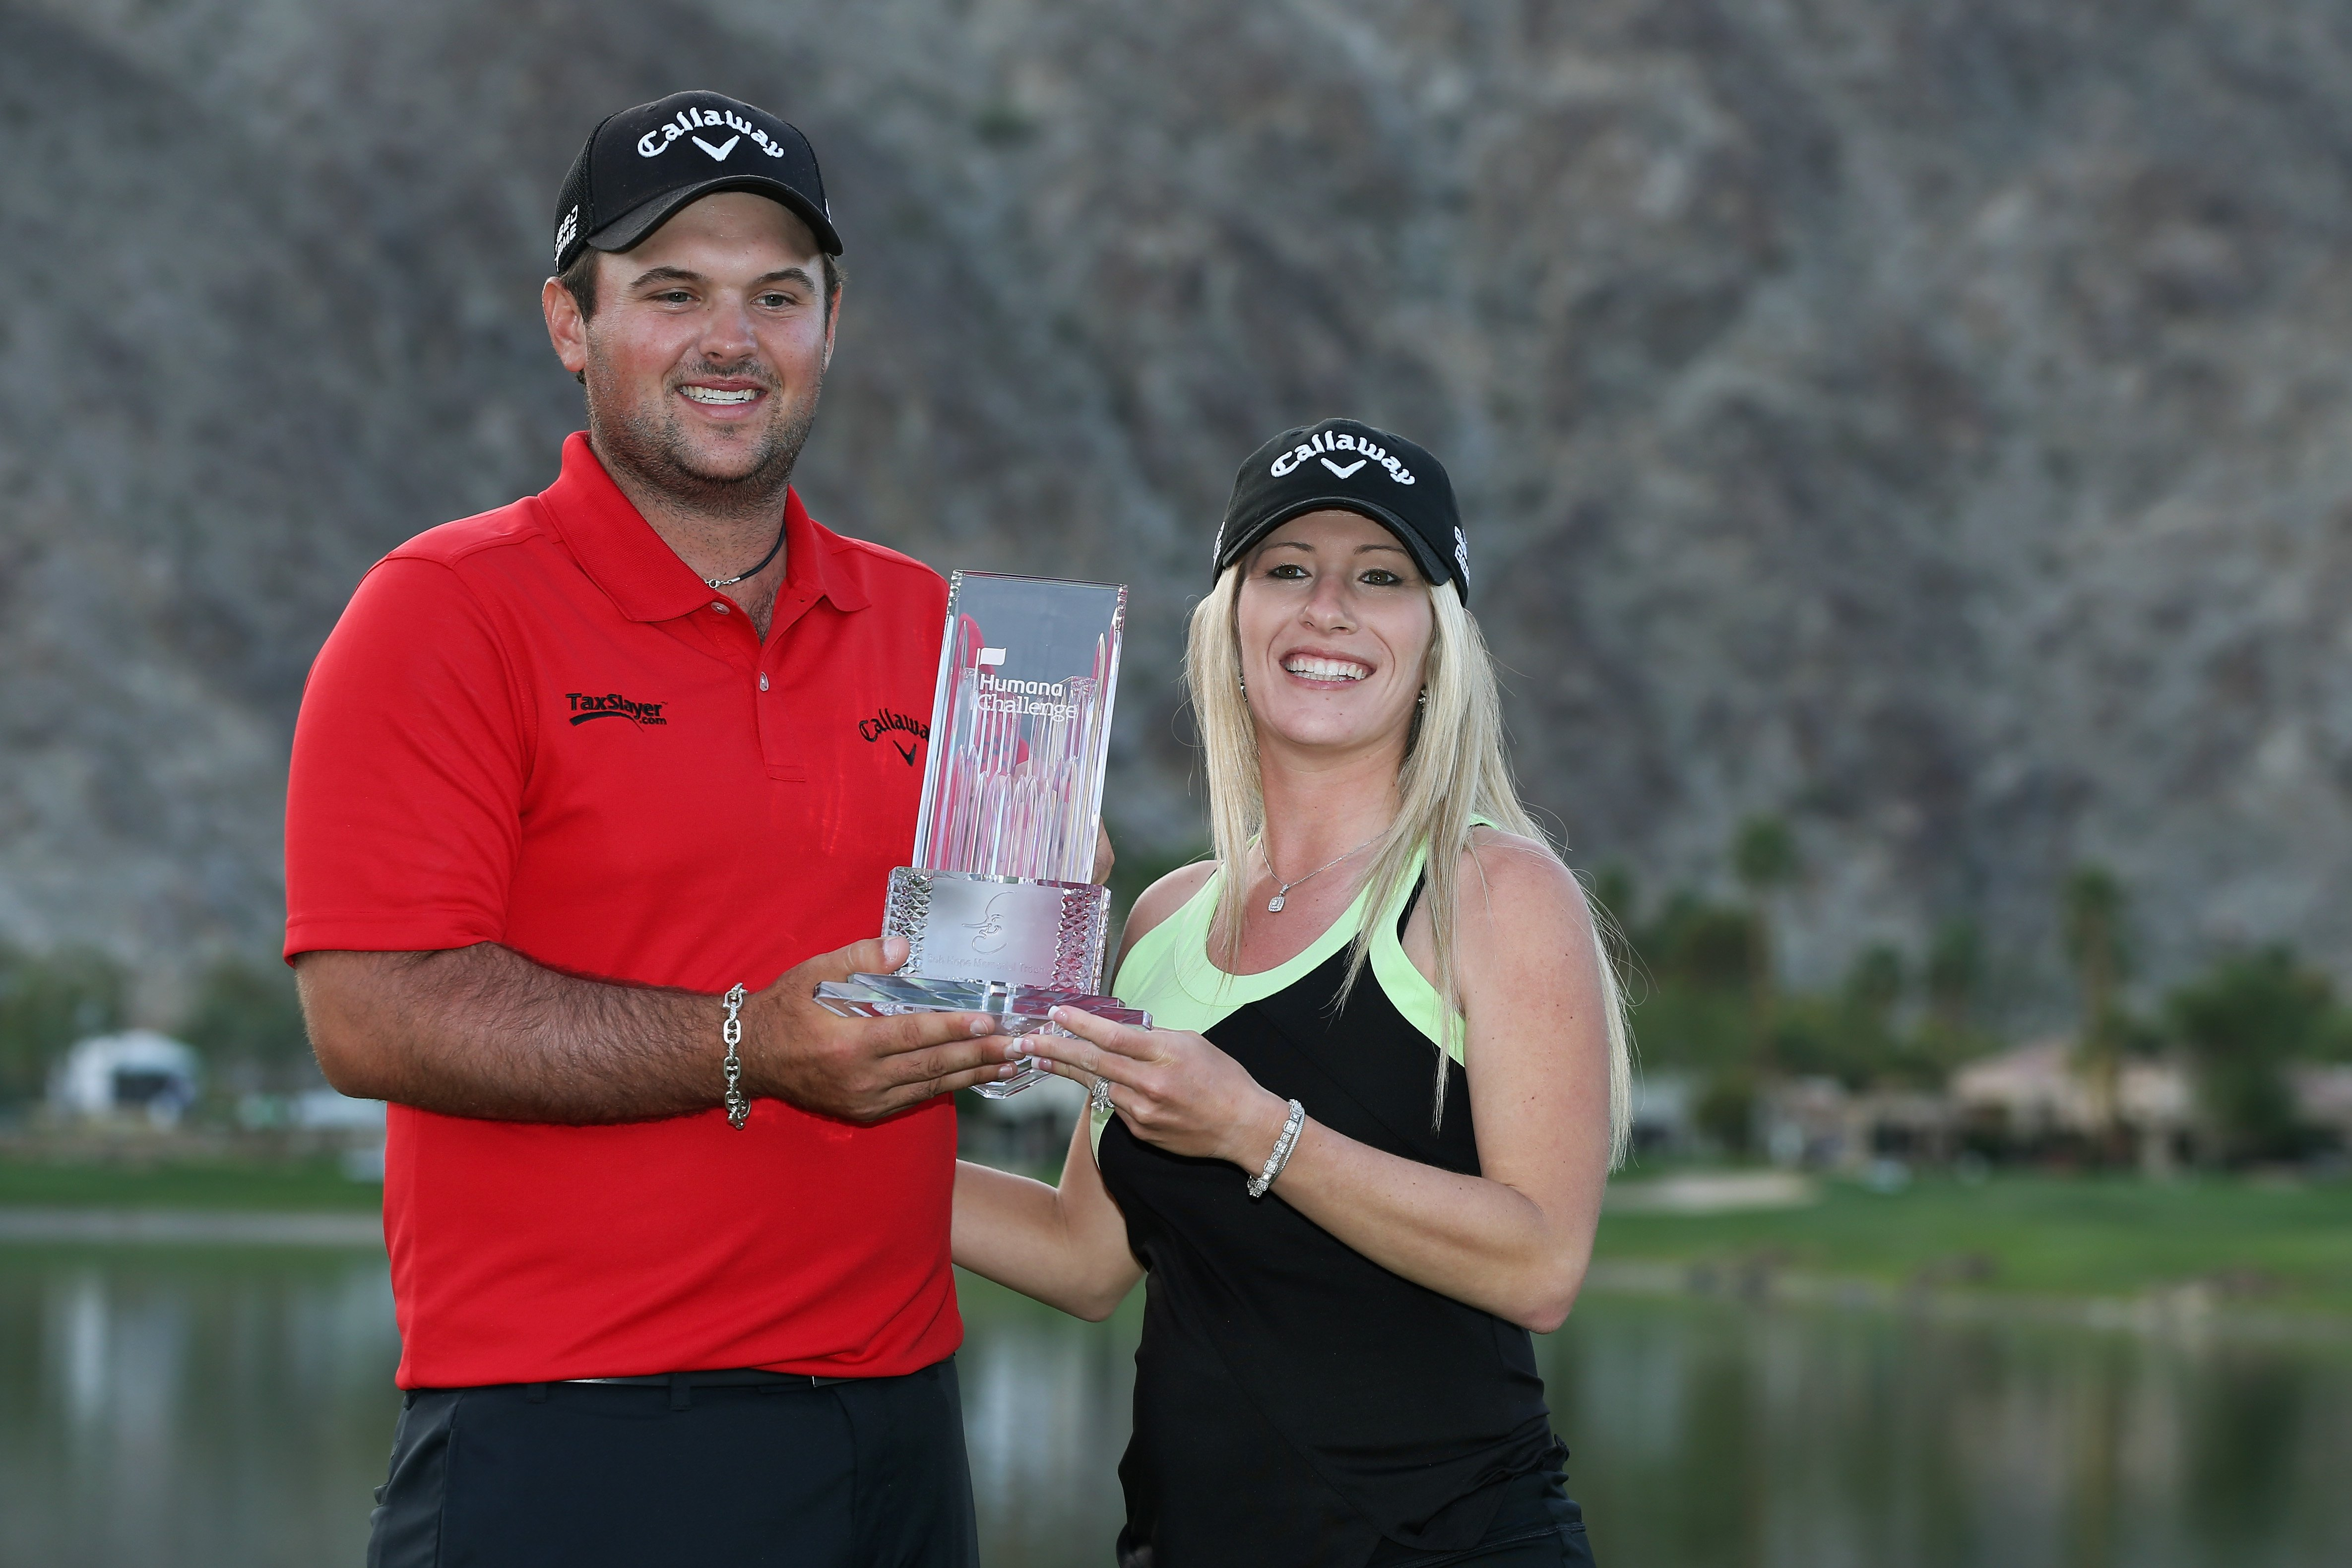 Patrick and Justine Reed pose with his trophy after winning the 2014 Humana Challenge.